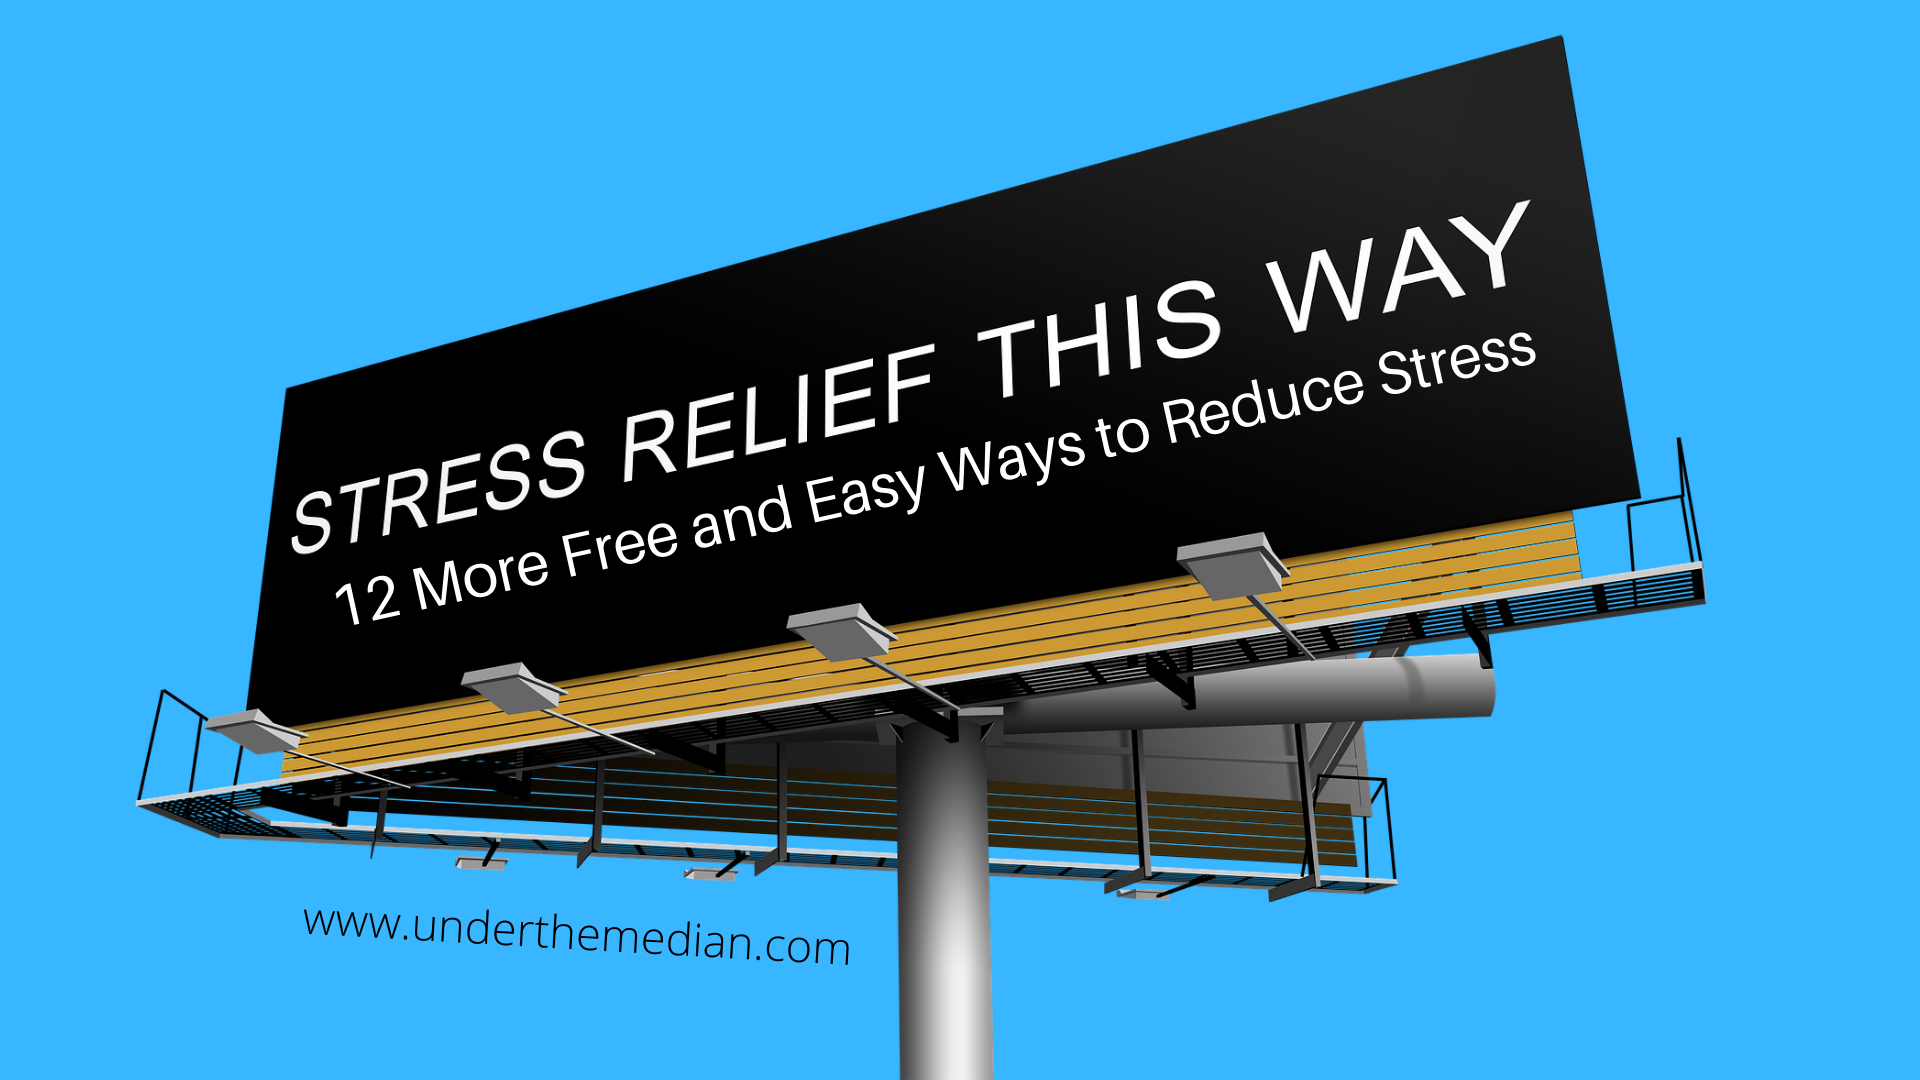 12 MORE Free and Easy Ways to Reduce Stress